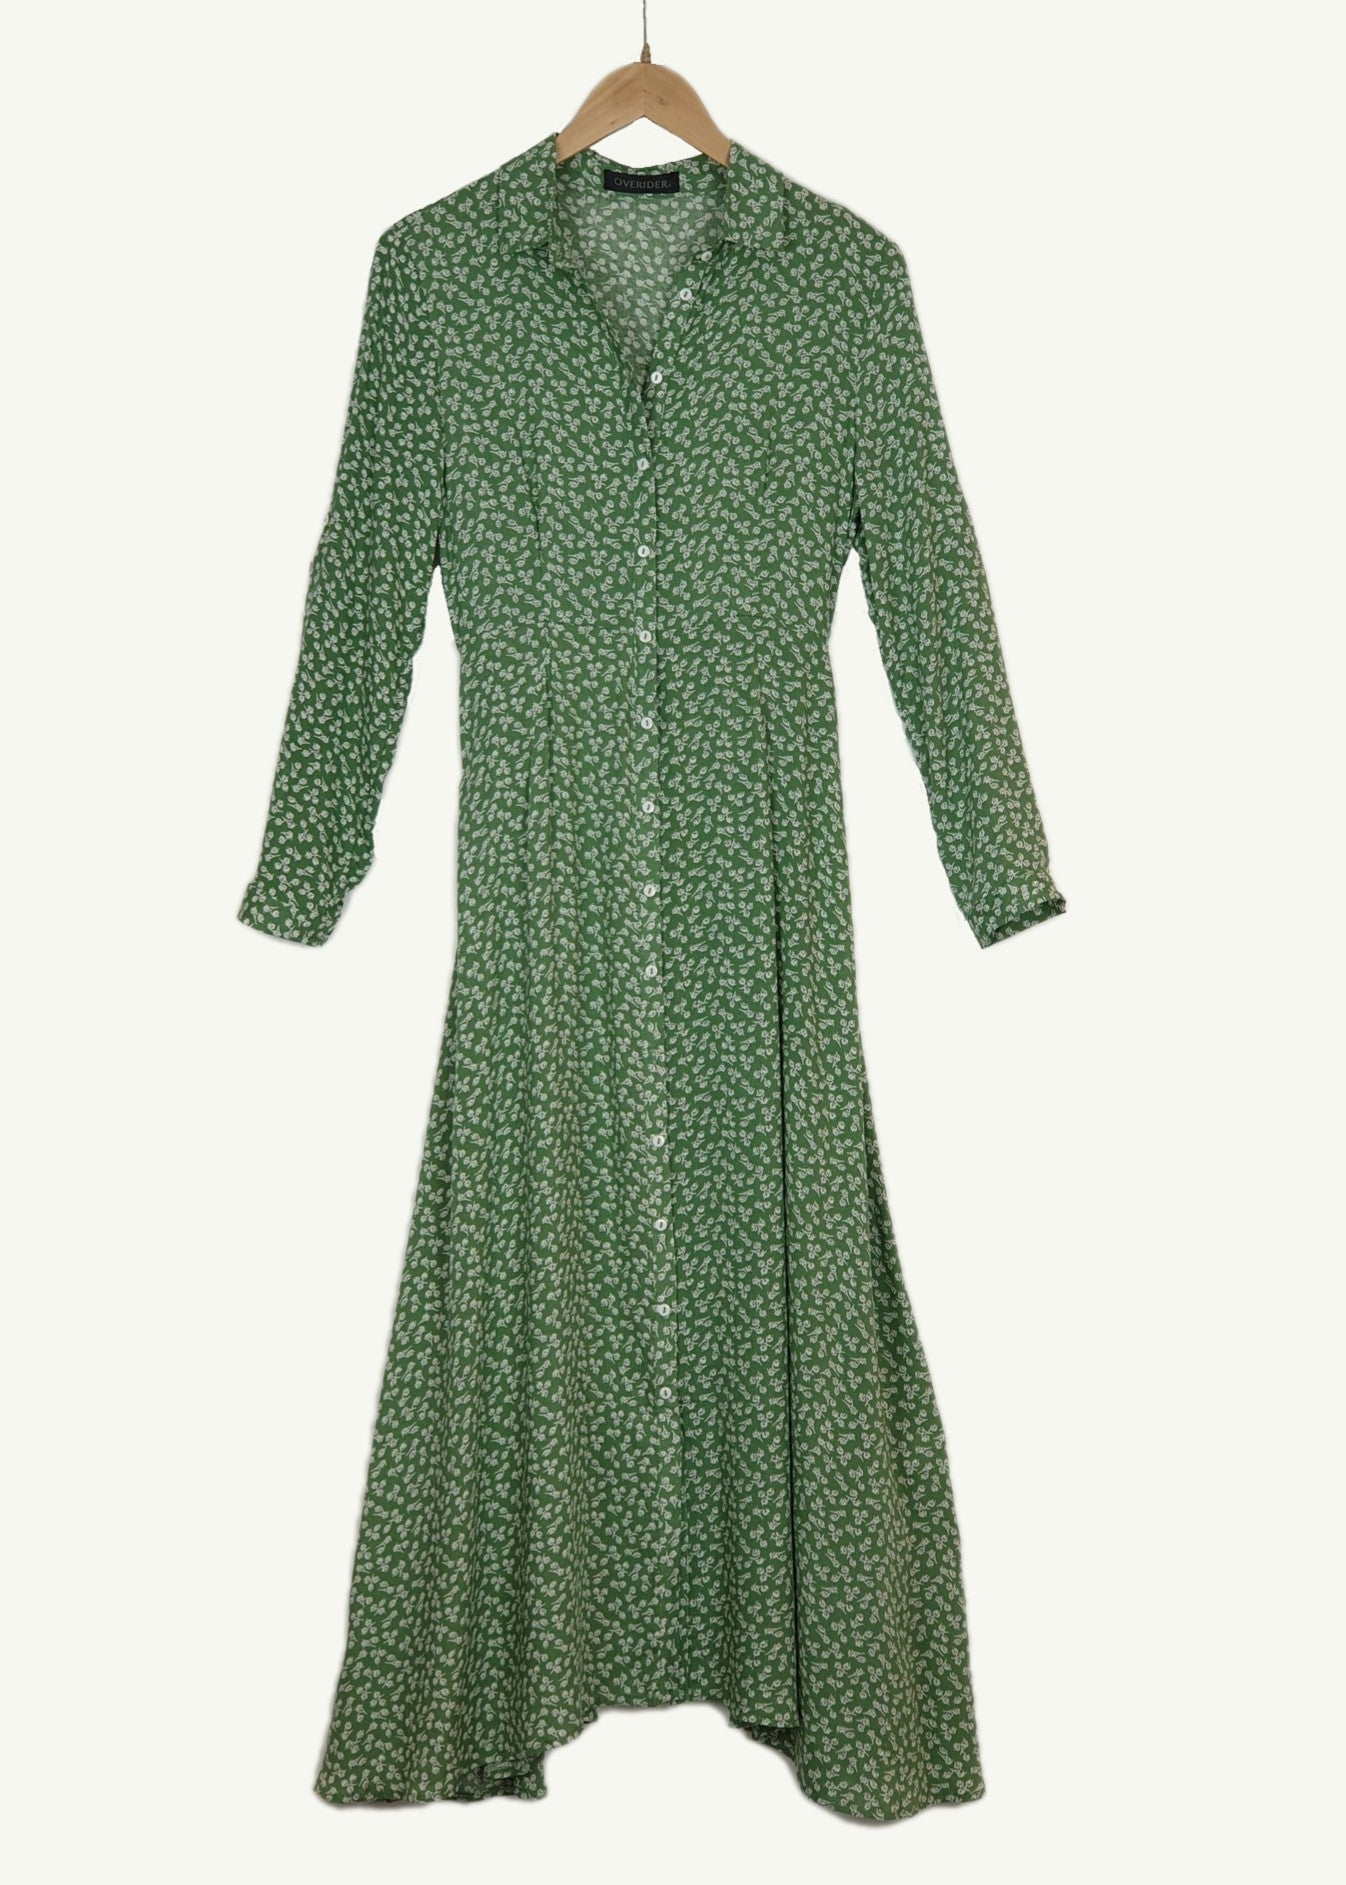 INES - Floral Cotton Dress - Green